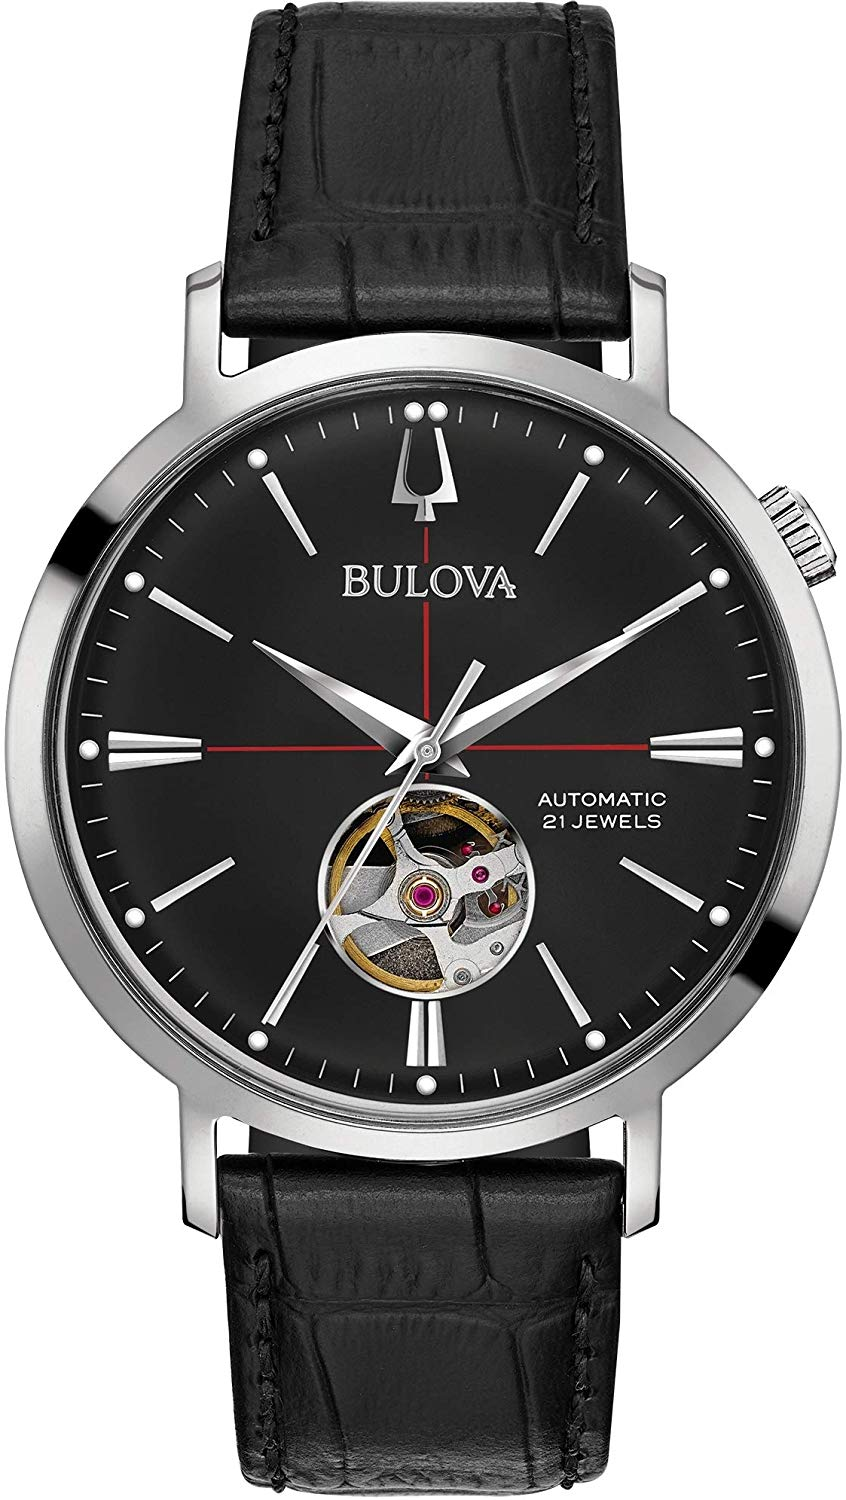 Bulova Mens Analogue Automatic Watch with Leather Strap 96A201